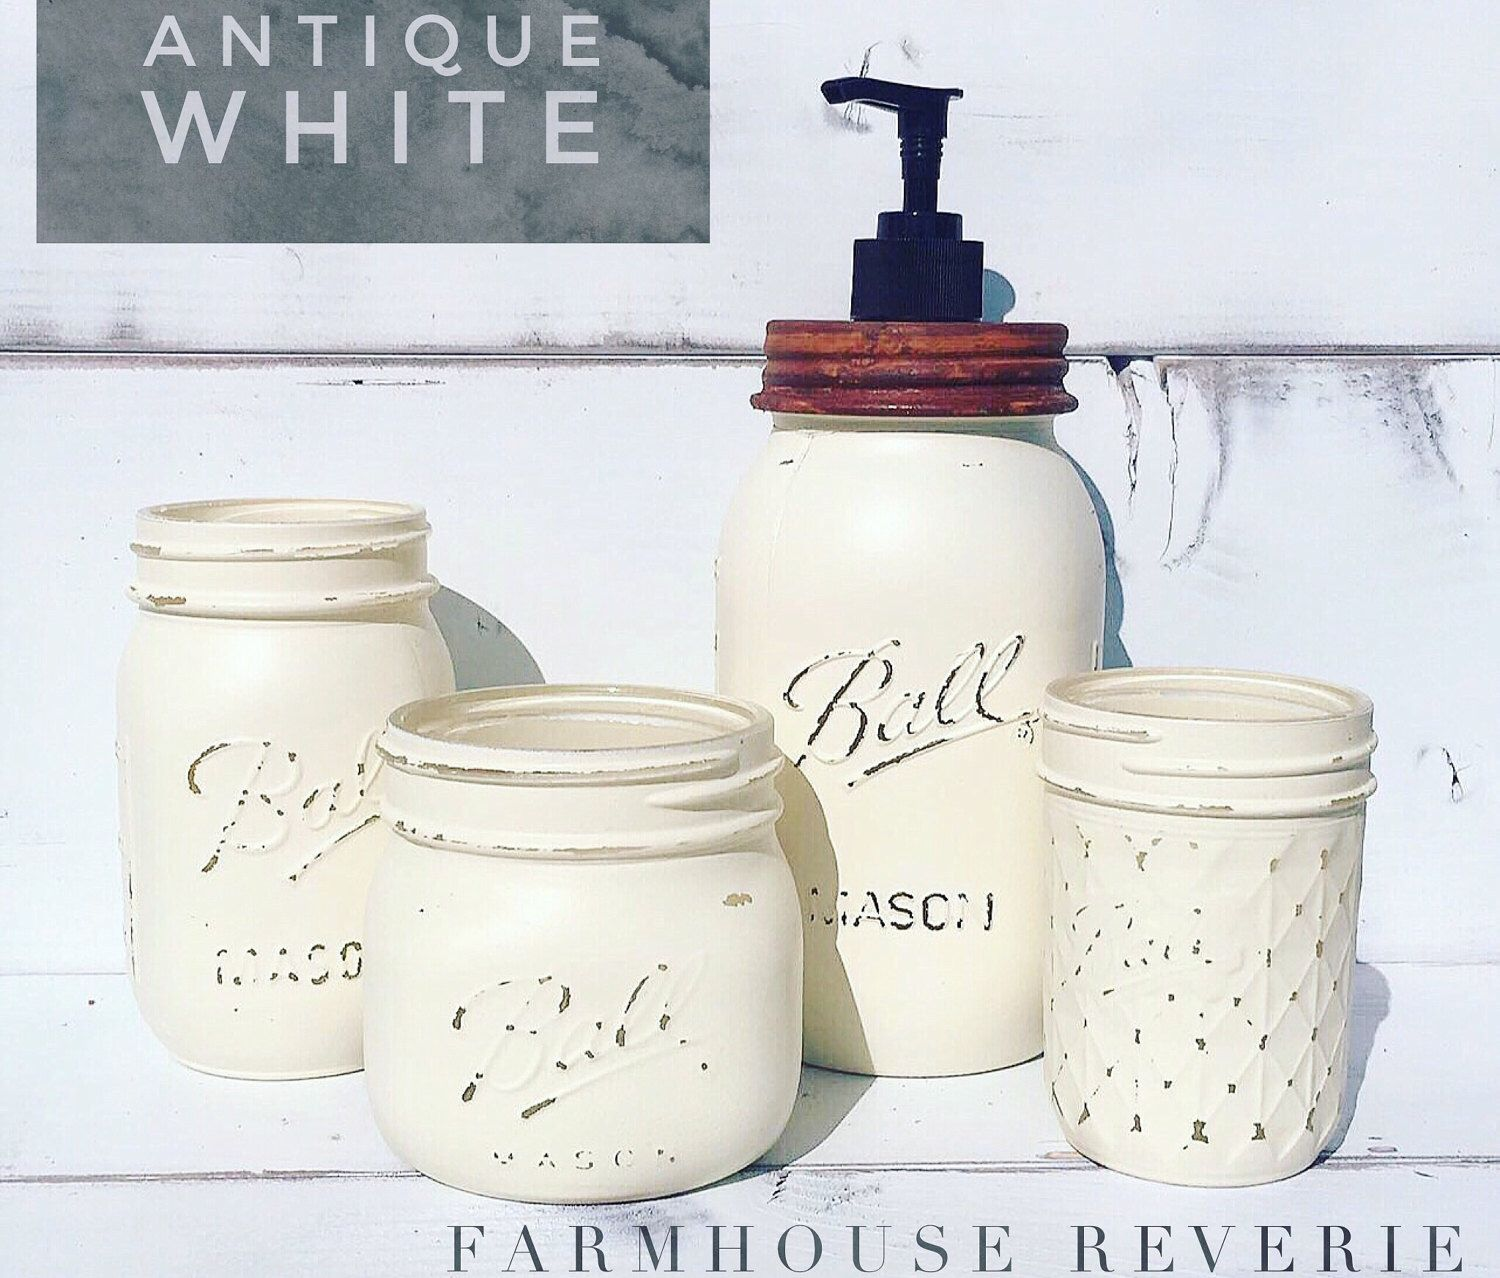 Vintage Bathroom Soap Dispenser Antique White Rustic Farmhouse Bathroom Set Primitive